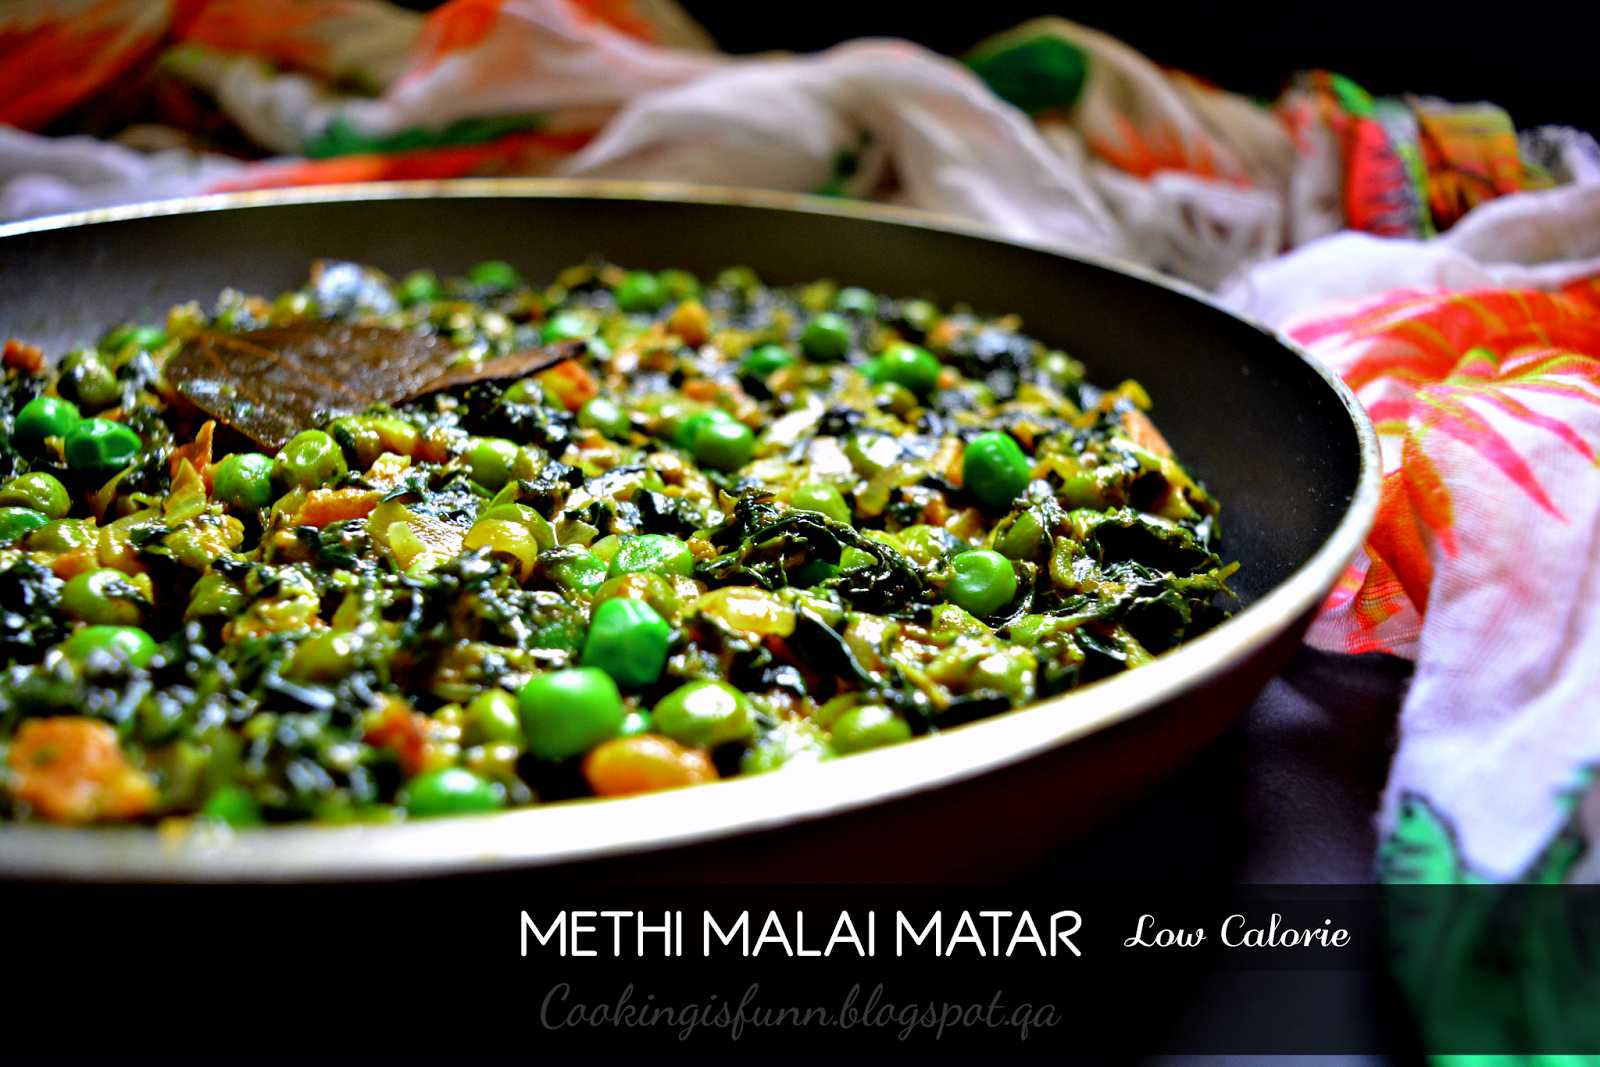 Dry Methi Malai Matar Recipe